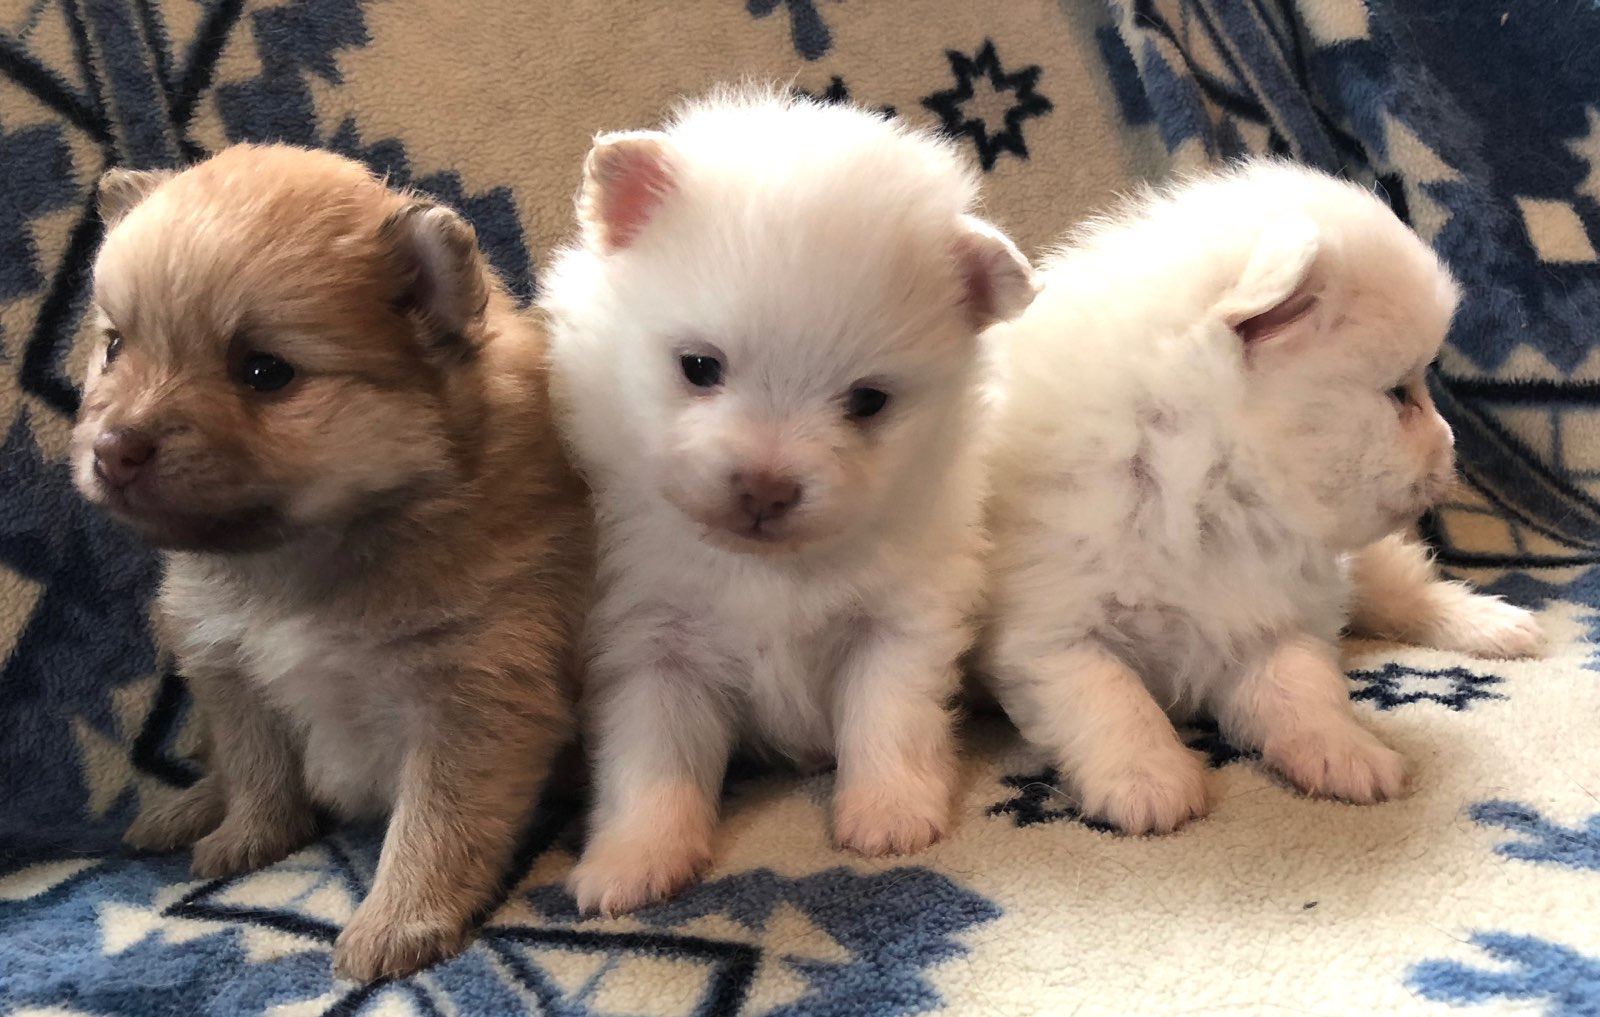 3 liittle Poms